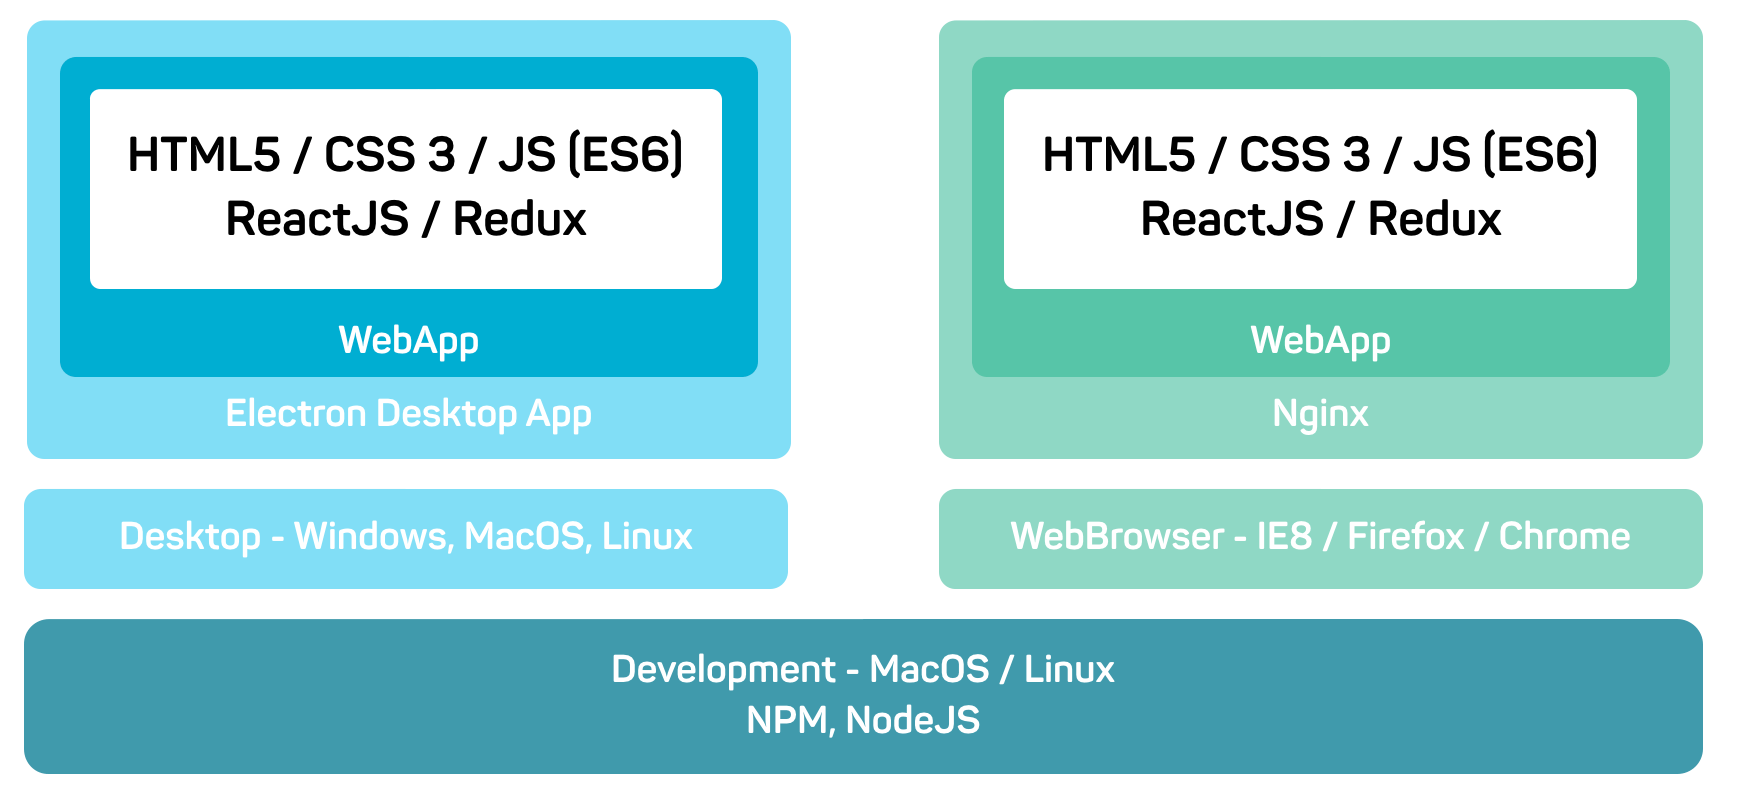 Developing Modern Offline Apps With Reactjs Redux And Electron Part 1 Introduction Codecentric Ag Blog